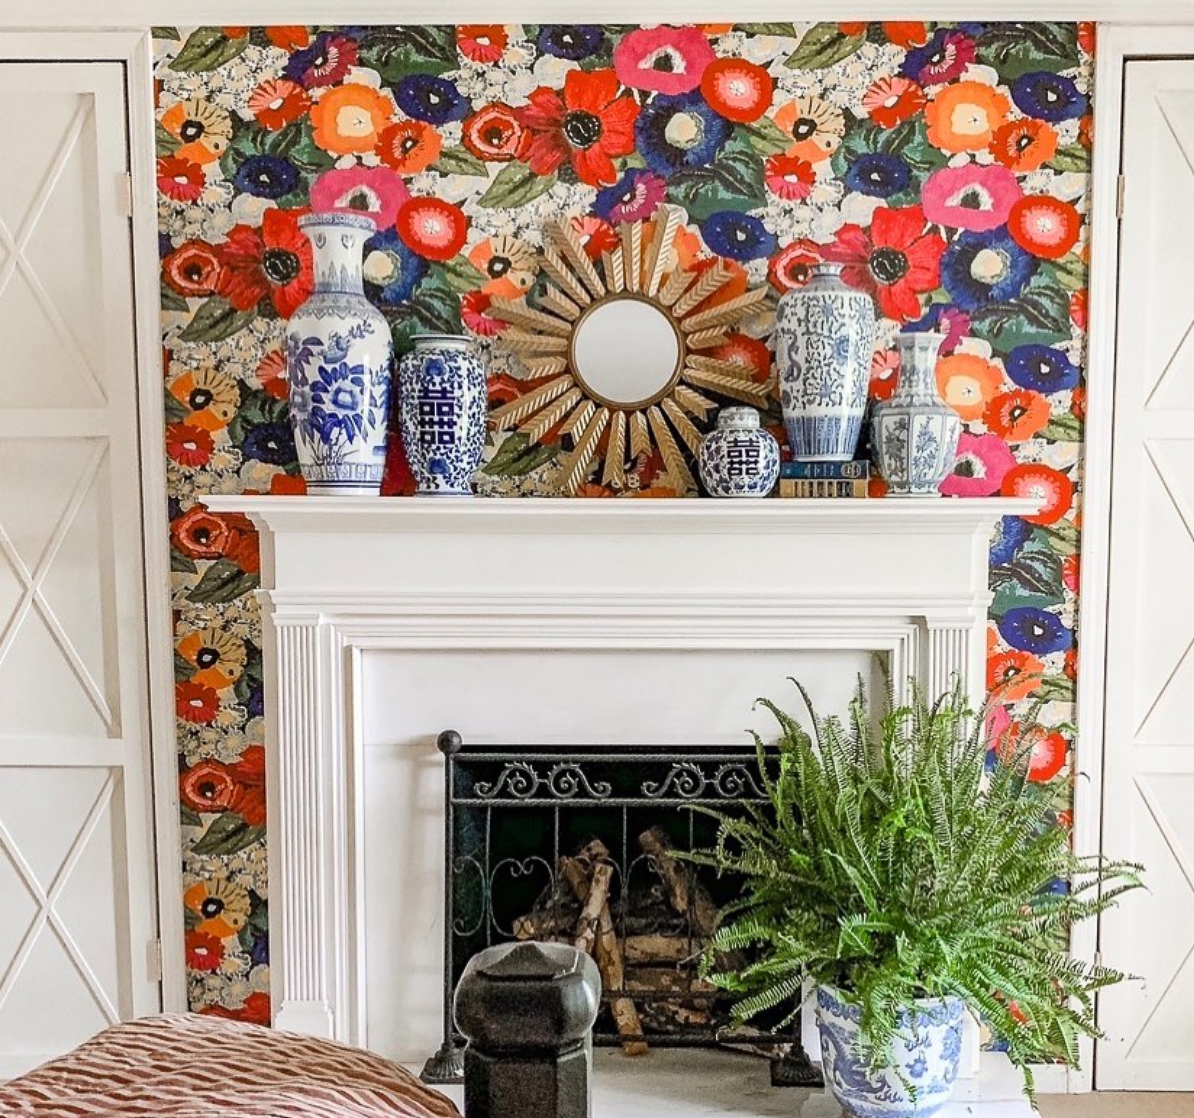 Bright and colorful floral wallpaper makes the mantel the focal point